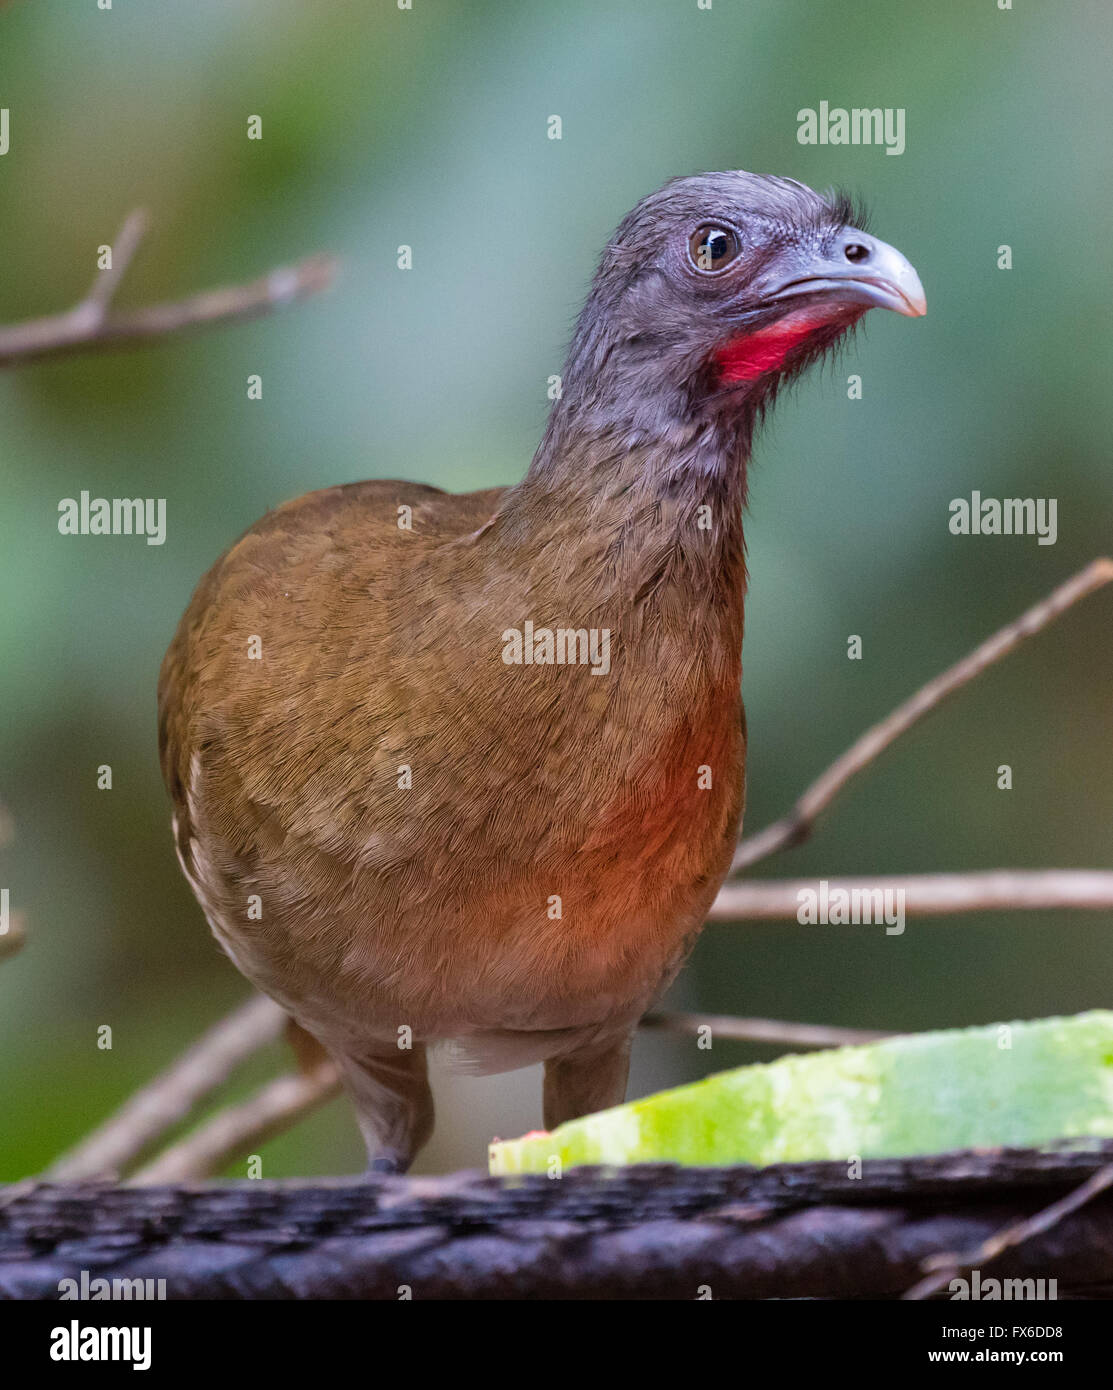 Gray-headed Chachalaca (Ortalis cinereiceps) eating fruit from a feeder in Panama - Stock Image